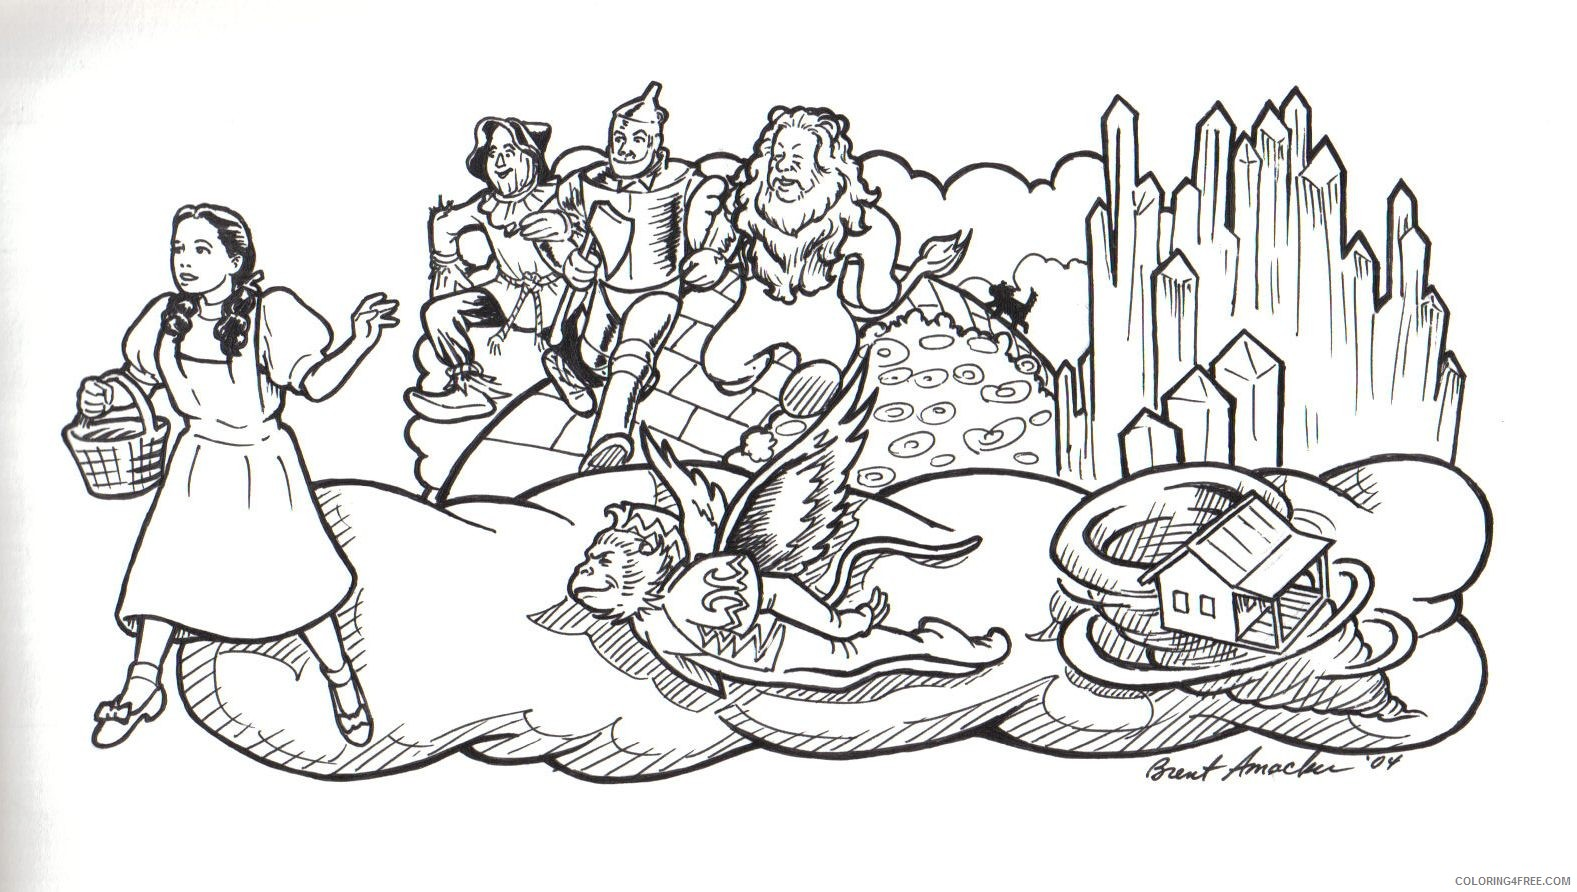 Wizard Of Oz Coloring Pages | Free Printable Coloring Pages ... | 892x1577